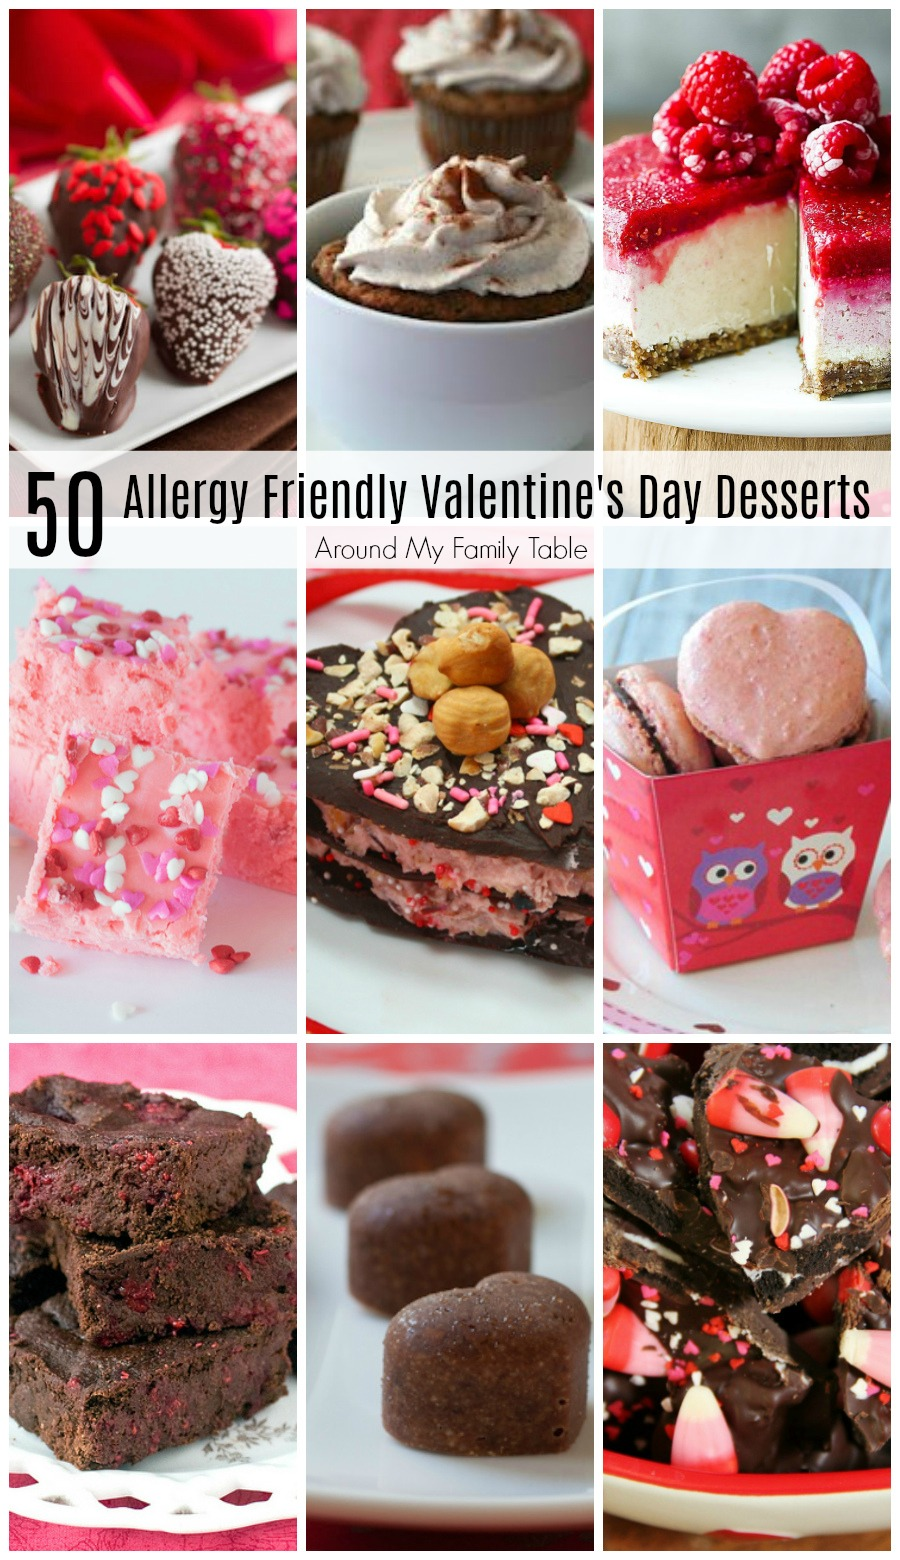 Valentine's Day is quickly coming up!  These decadent Allergy Friendly Valentine's Desserts are sure to satisfy your sweet tooth.